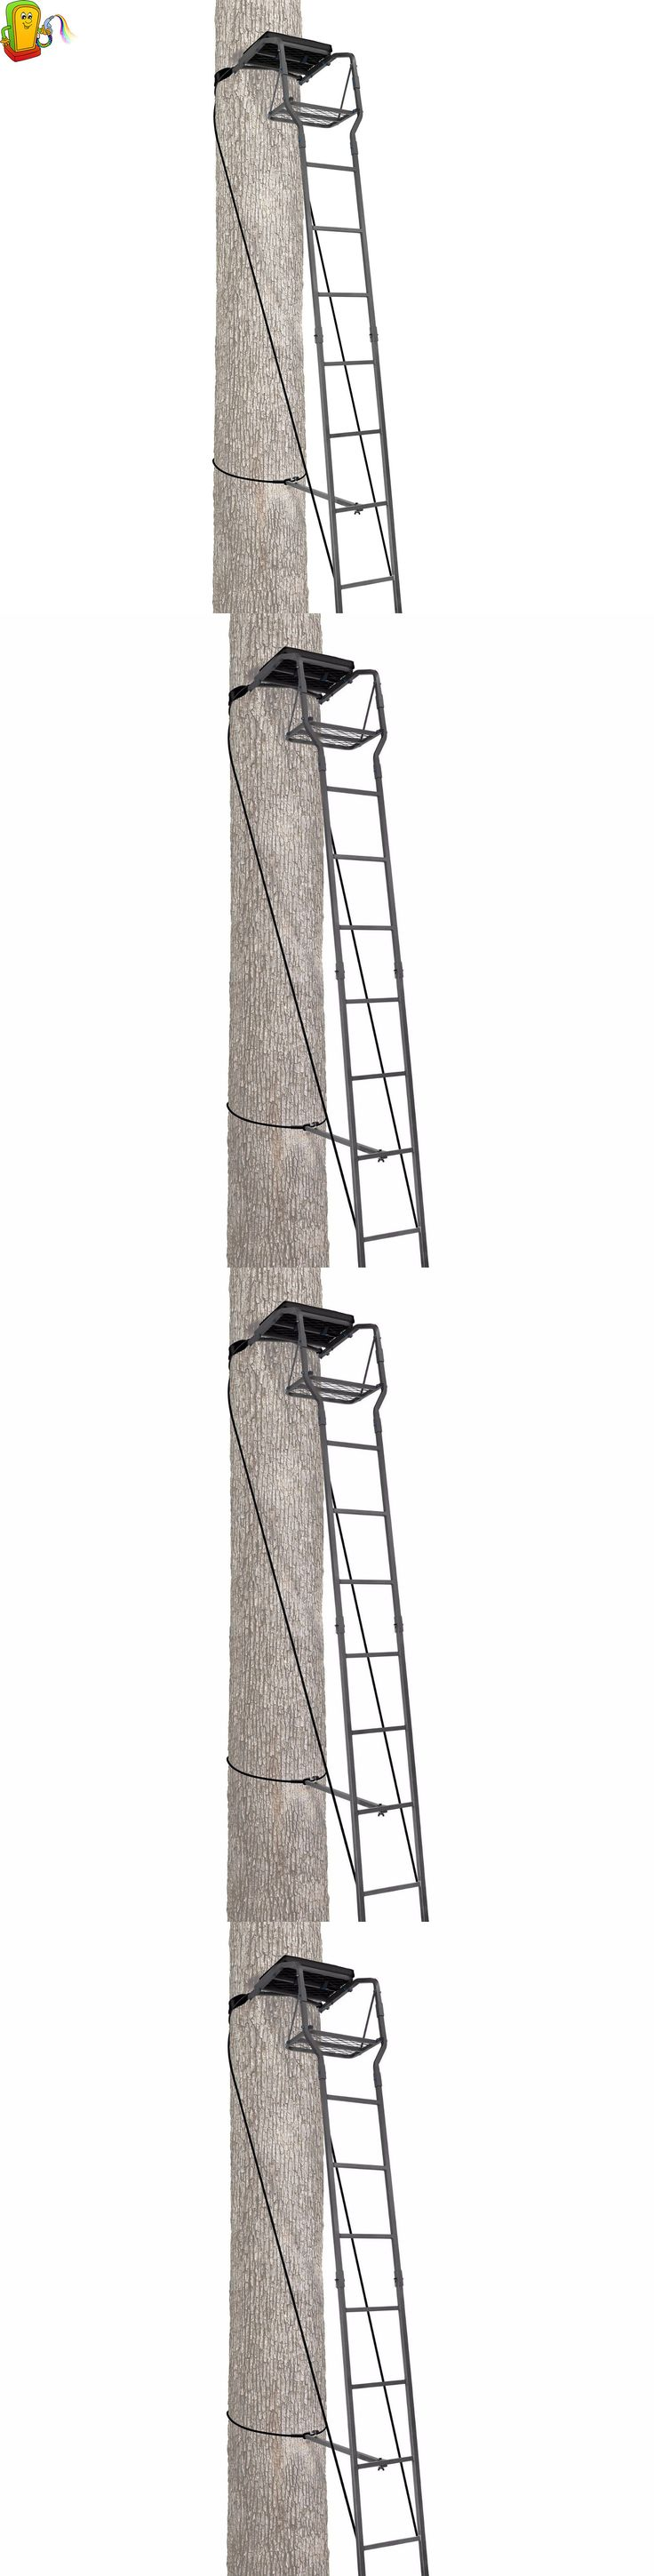 Tree Stands 52508: Deer Hunting Ladder Tree Stand Sniper Rifle Bow Treestand Man Climbing -> BUY IT NOW ONLY: $77.84 on eBay!